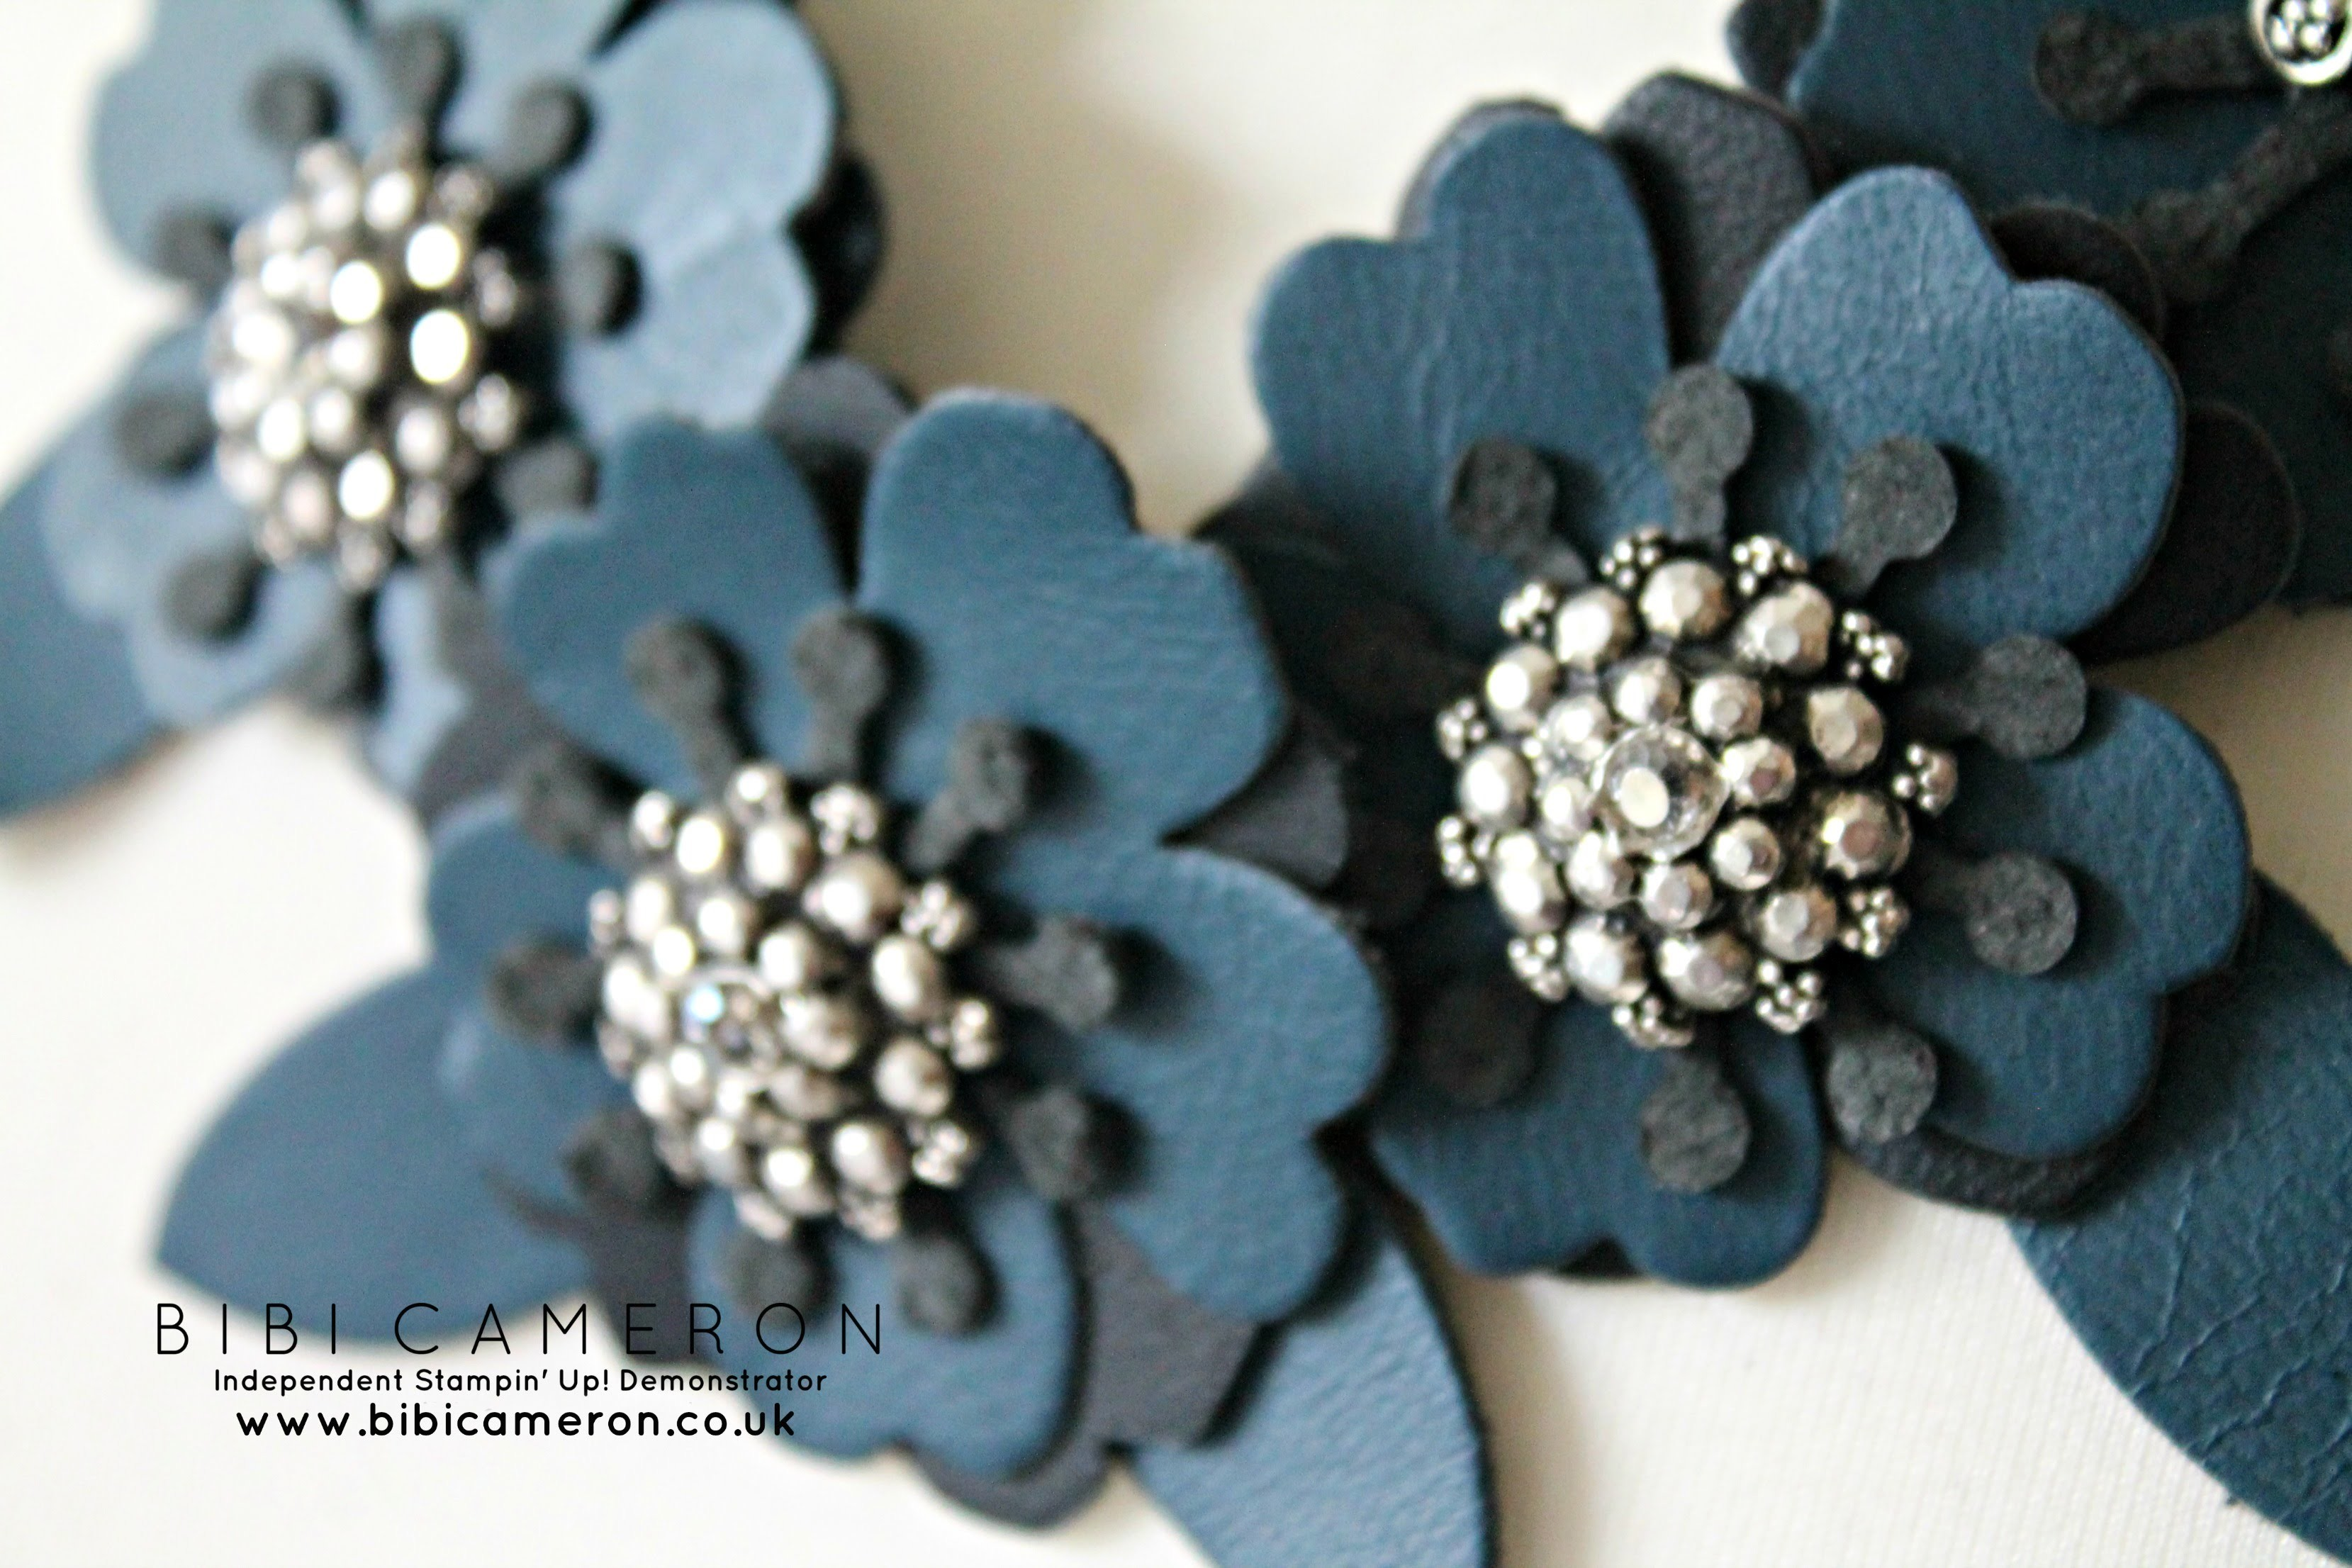 Cutting leather with Stampin Up dies (Bouquet Bigz L die DIY leather necklace)